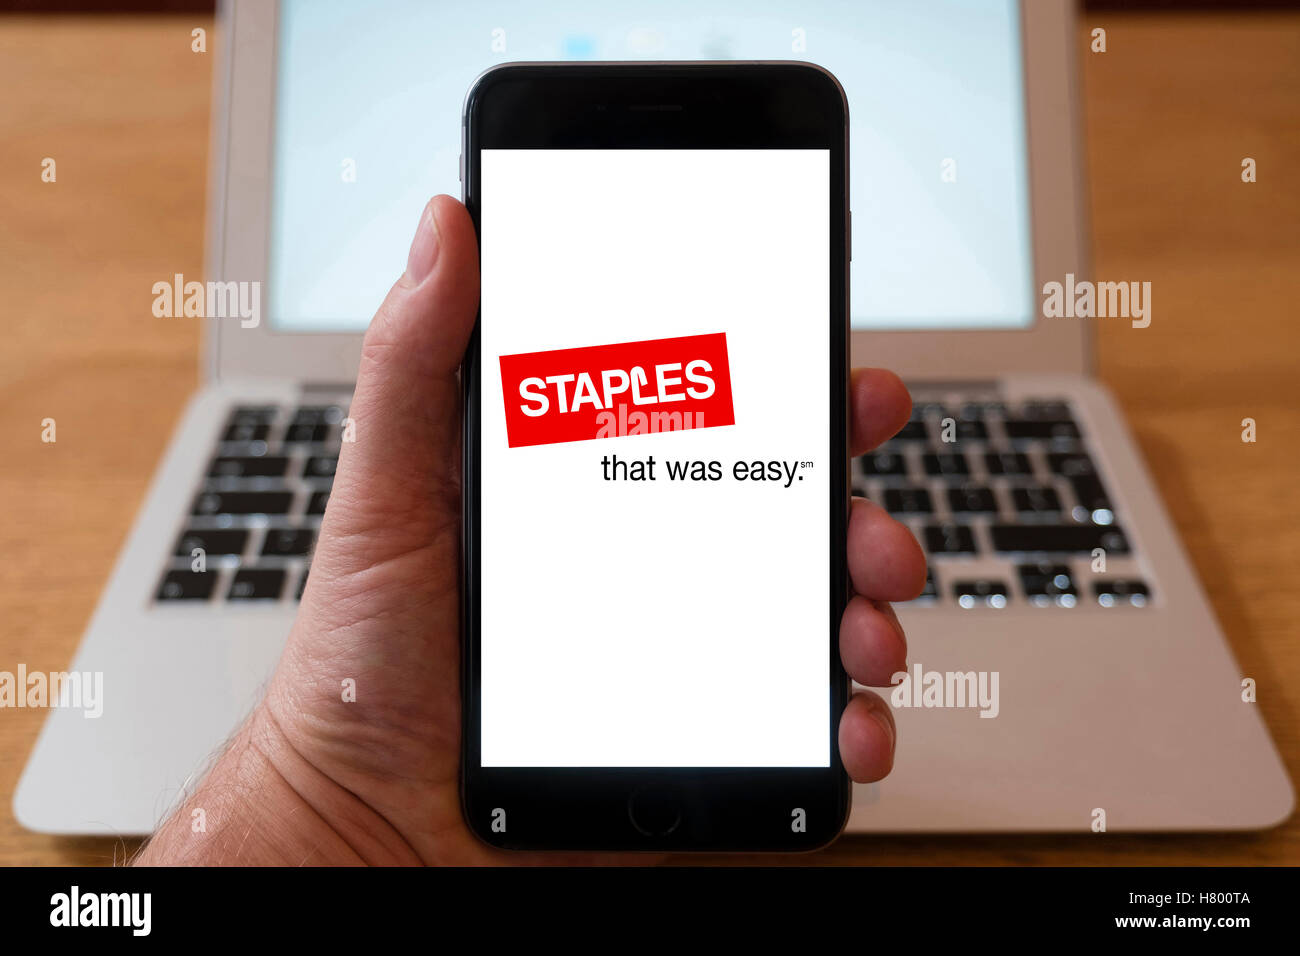 Using iPhone smartphone to display logo of Staples office supplies chain of stores - Stock Image